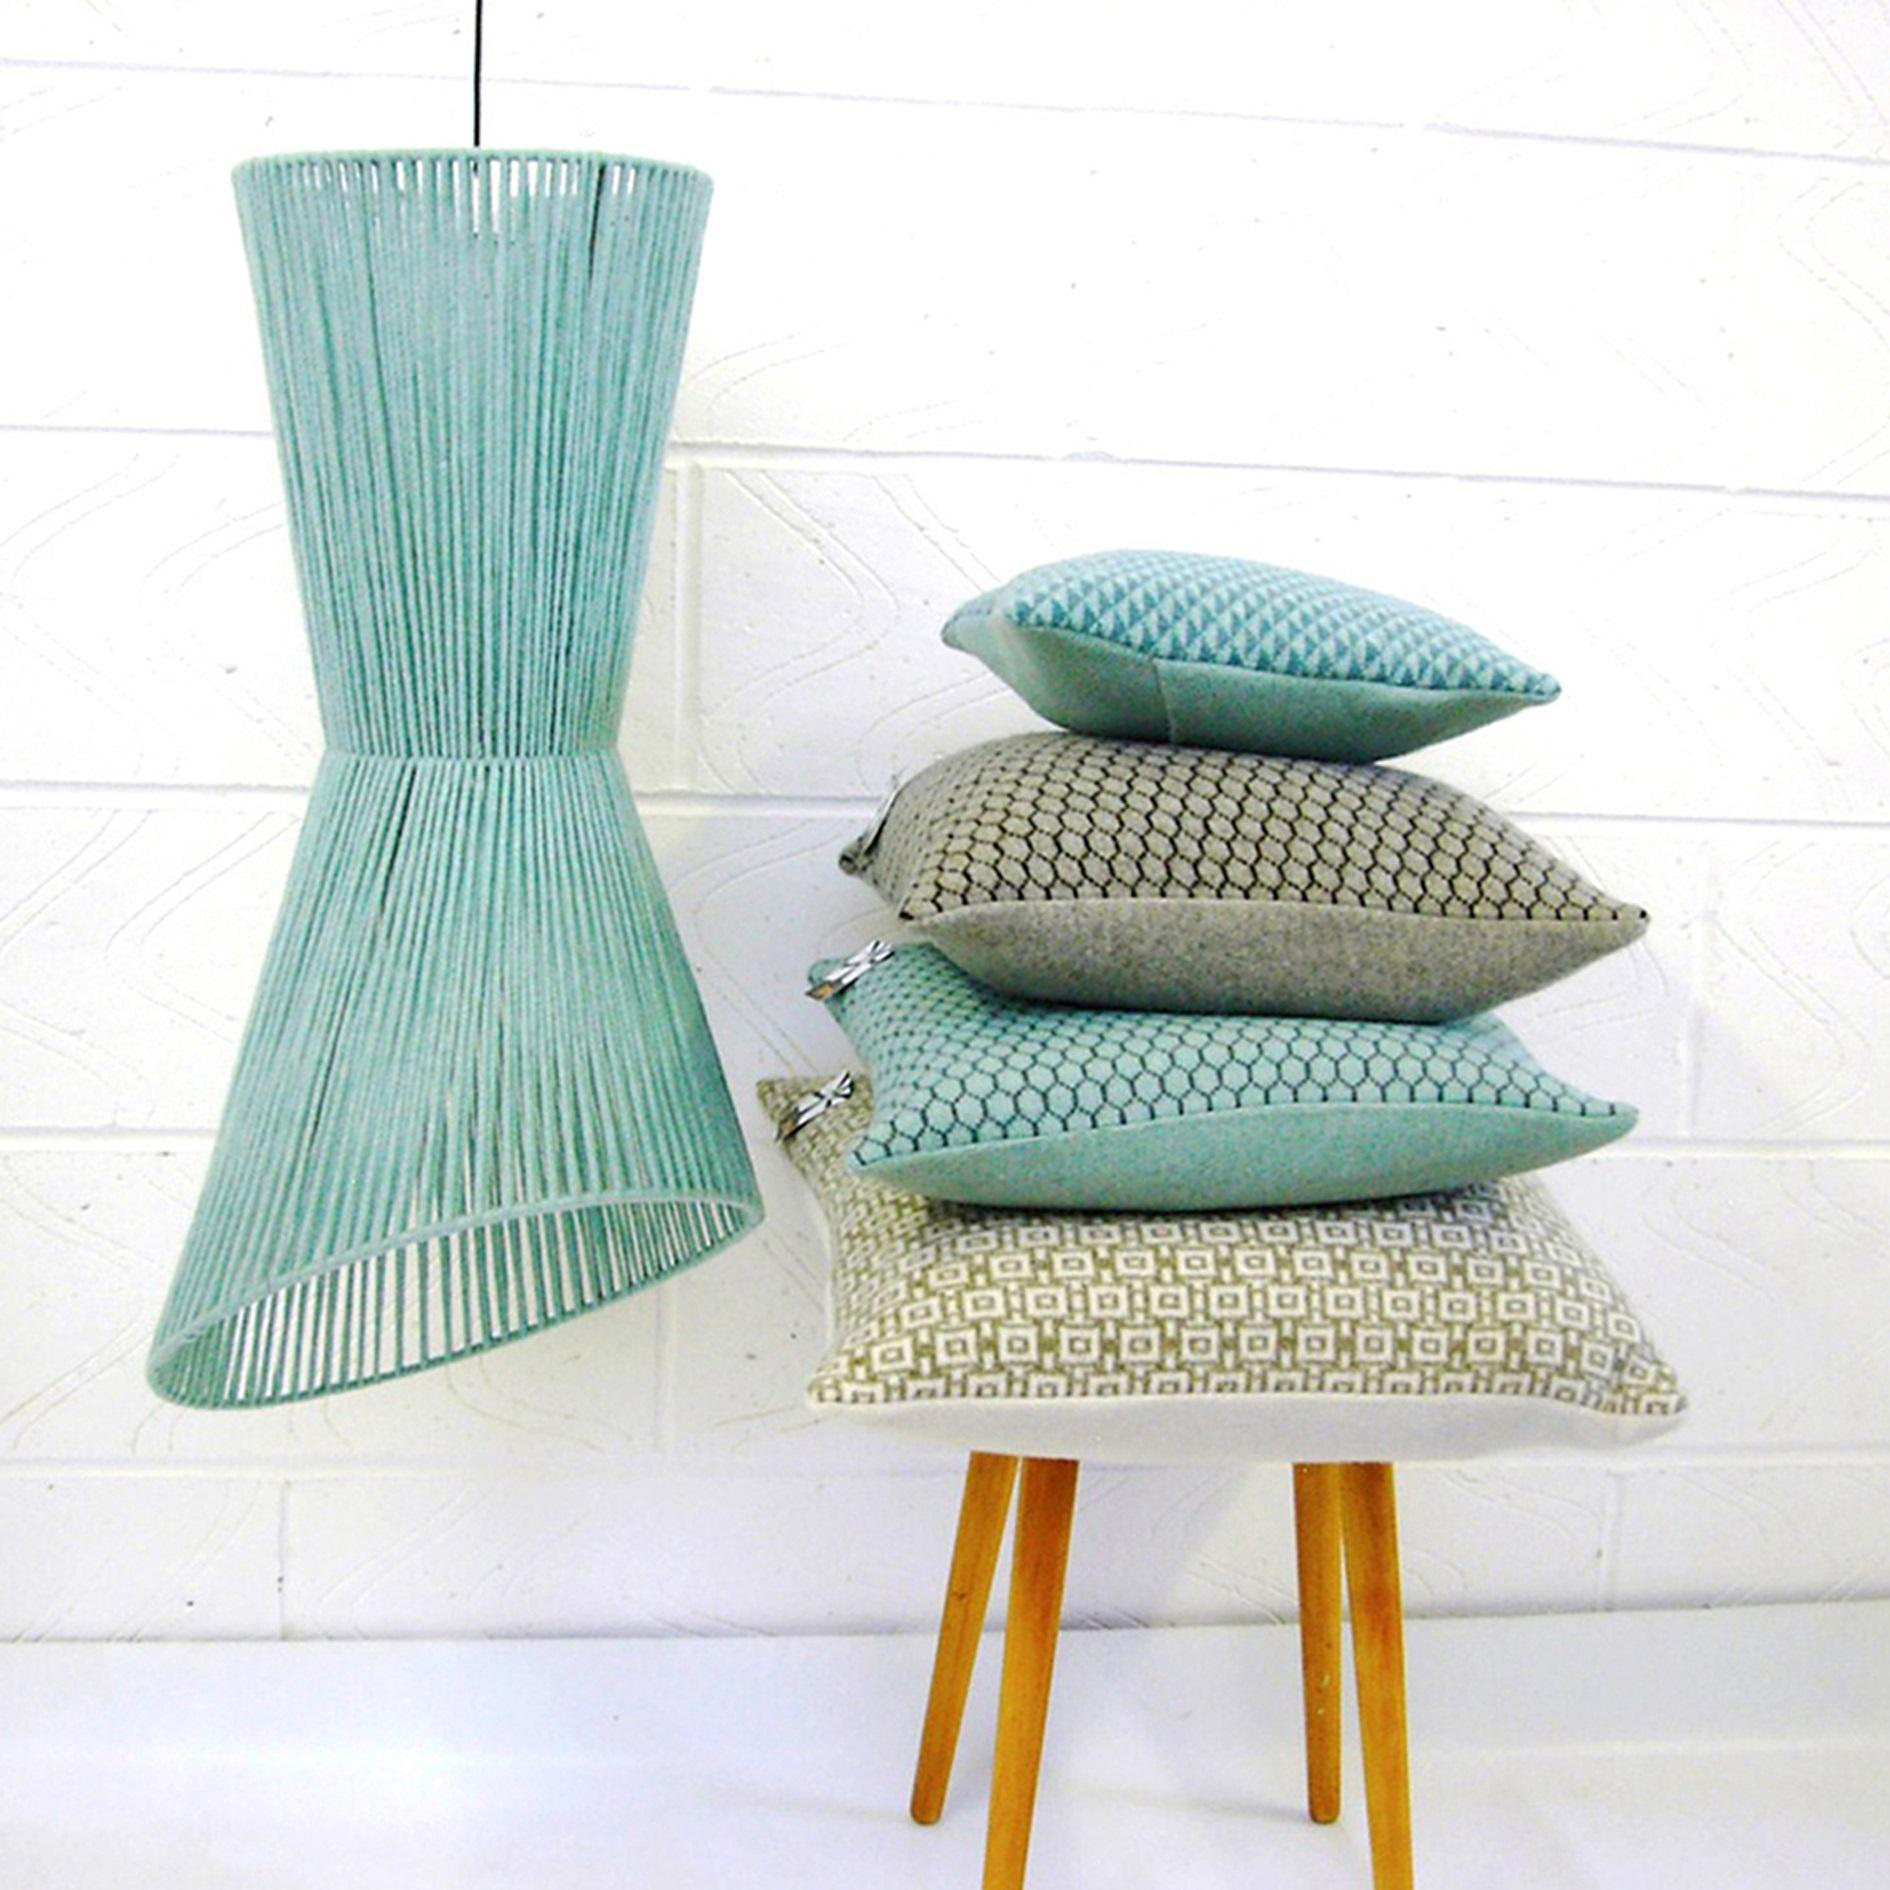 Janie Knitted Textiles appoints Howling Moon http://t.co/GZGPHzLPdR @knittedjanie @howlingmoonpr http://t.co/LDfcFxGbtA